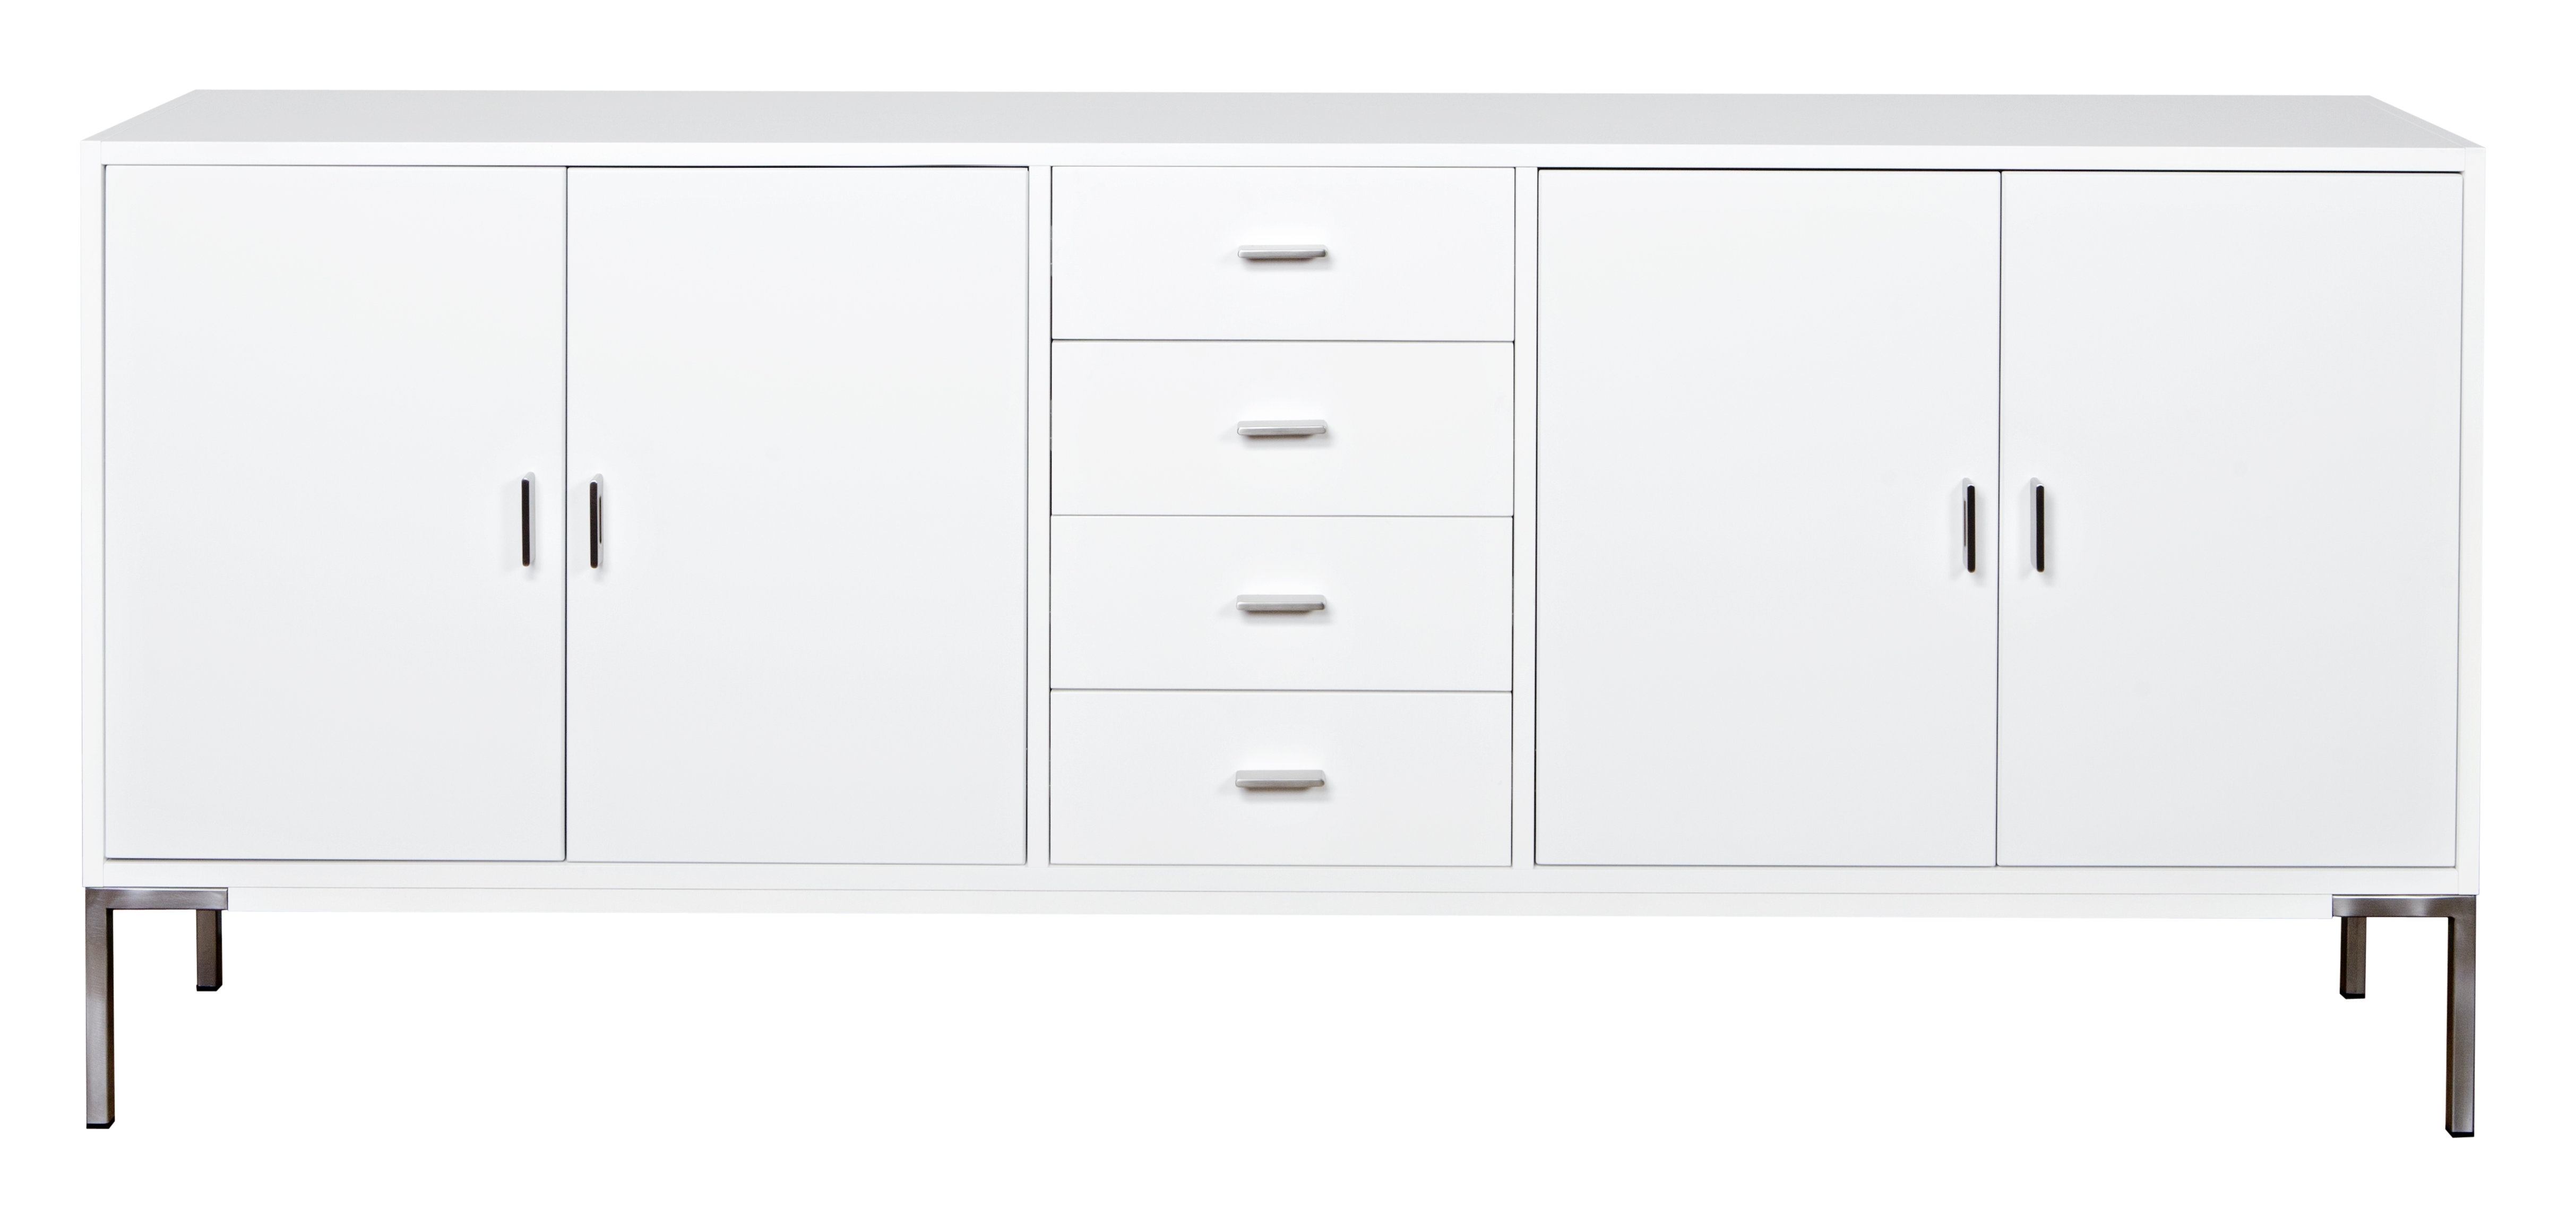 Dcor Design Hinrik 4 Door 4 Drawer Sideboard | Wayfair.co.uk pertaining to Boyce Sideboards (Image 9 of 30)